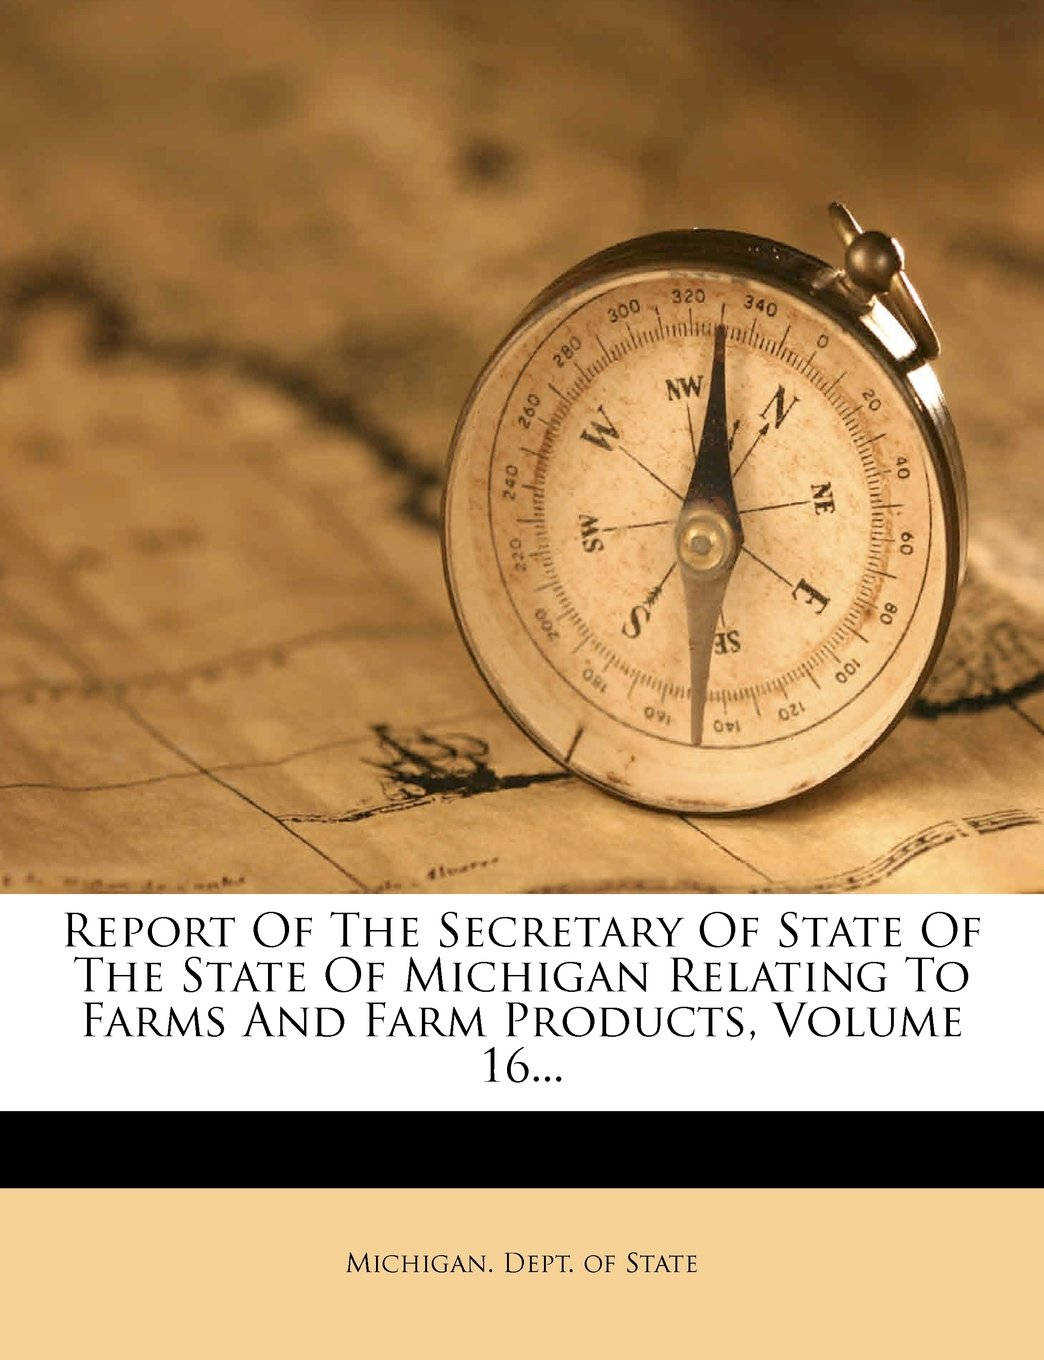 Report Of The Secretary Of State Of The State Of Michigan Relating To Farms And Farm Products, Volume 16... PDF